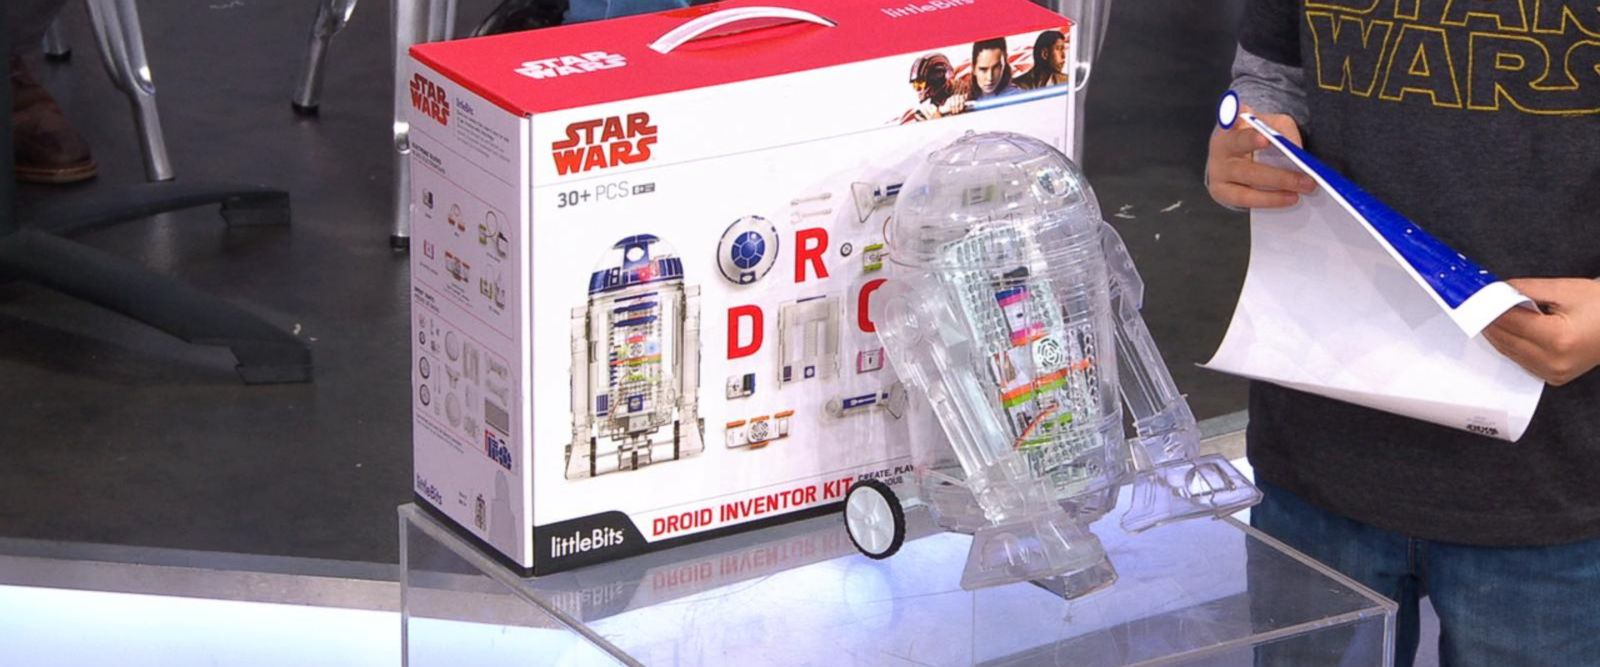 VIDEO: What to know about the hottest new 'Star Wars' toys